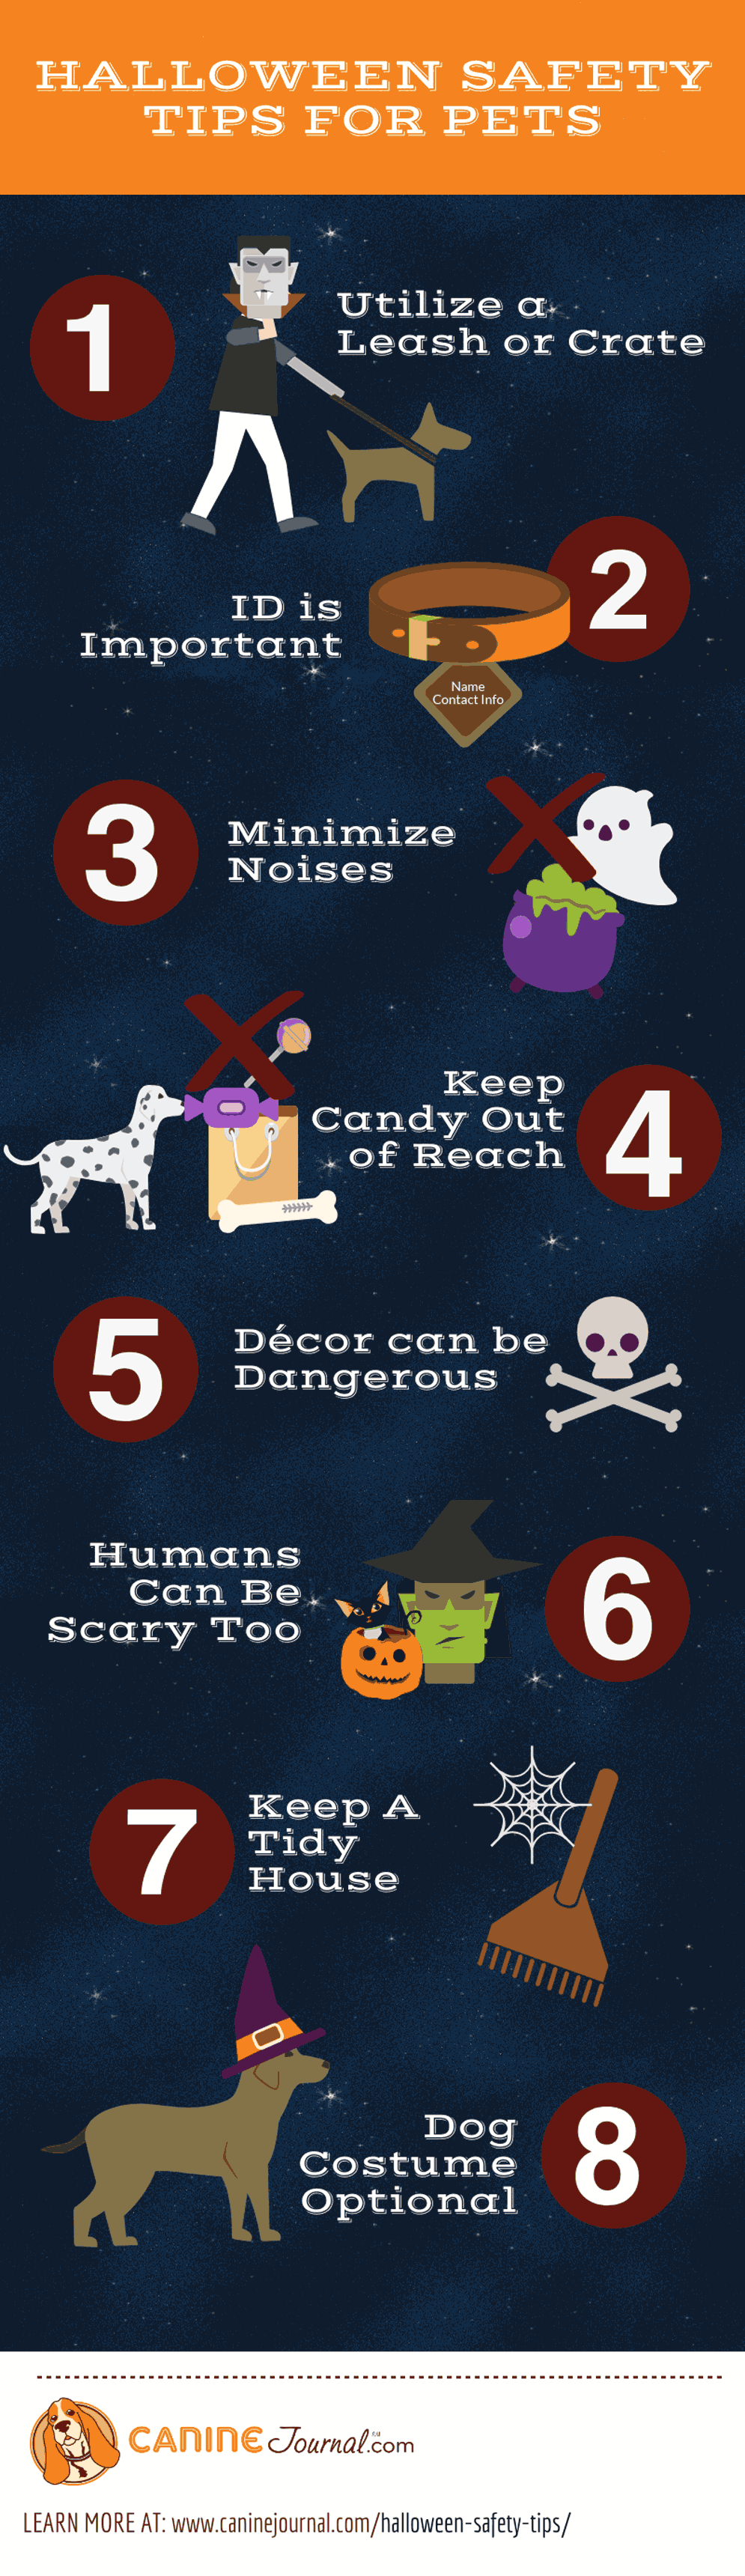 8 Halloween Safety Tips for Pets